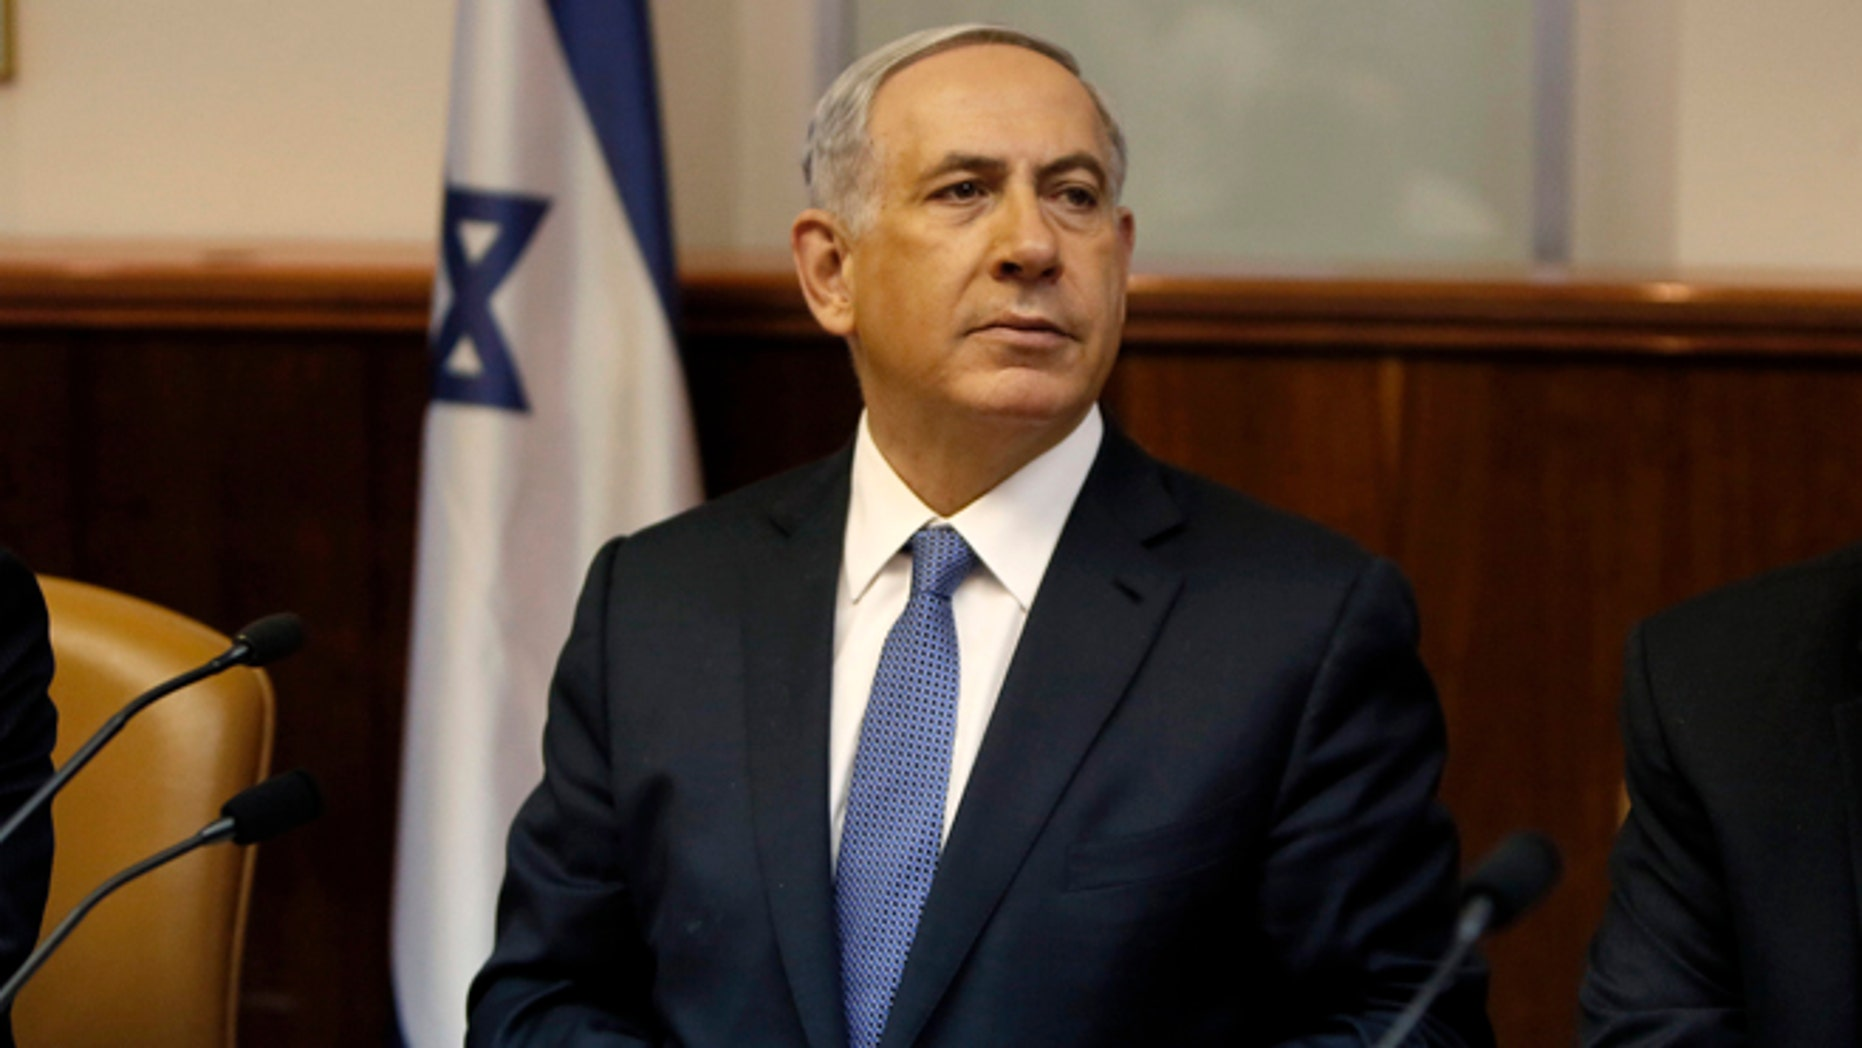 Feb. 1, 2015: Israeli Prime Minister Benjamin Netanyahu is shown at a meeting in Jerusalem.